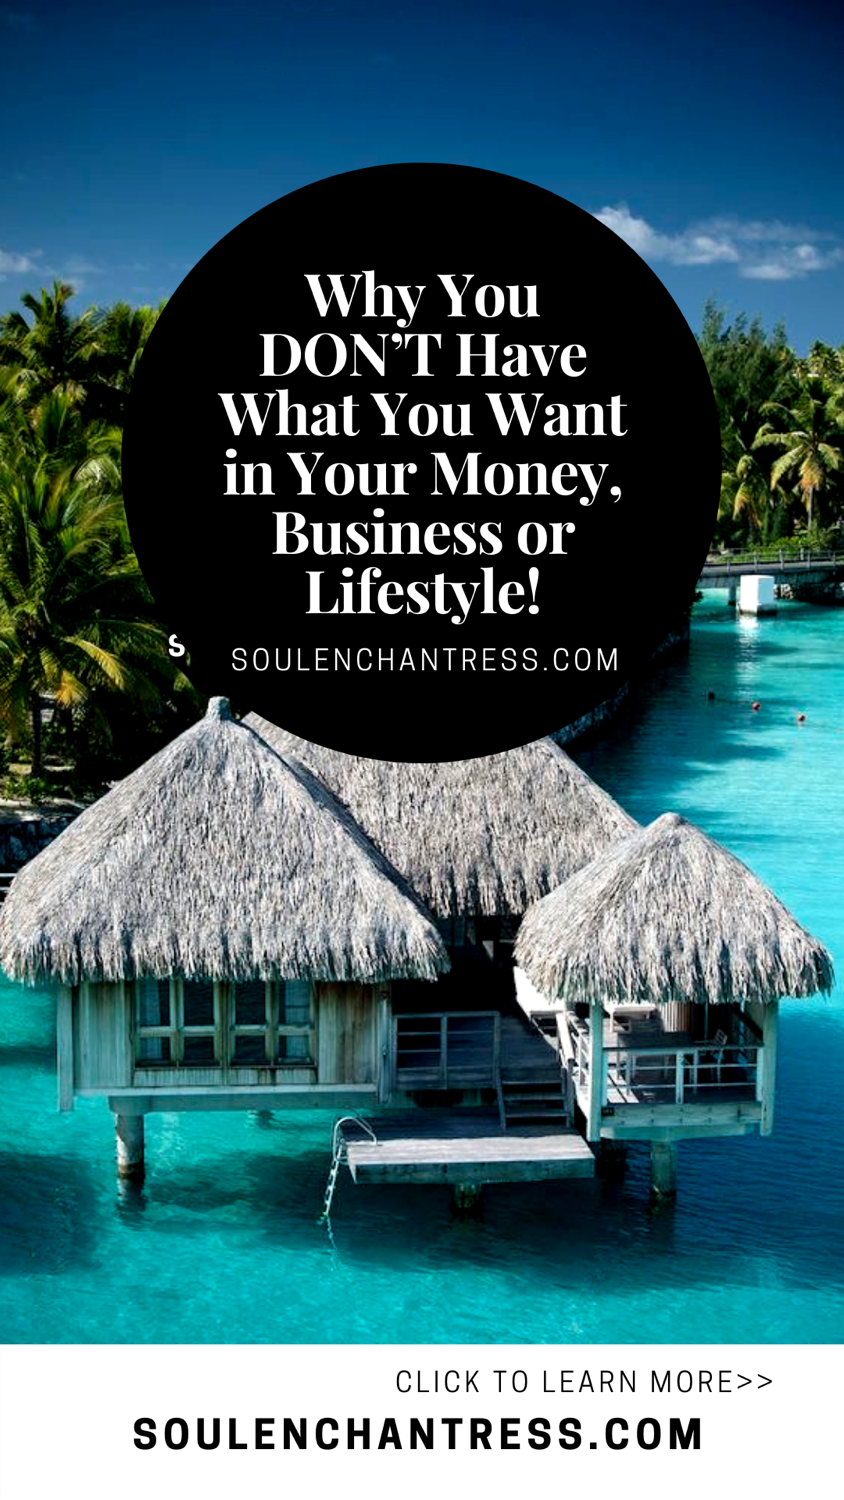 soul enchantress, how to create your dream lifestyle, online course to make money, how to turn your business into a money machine, how to create a luxuriously fulfilling lifestyle, introvert entrepreneur